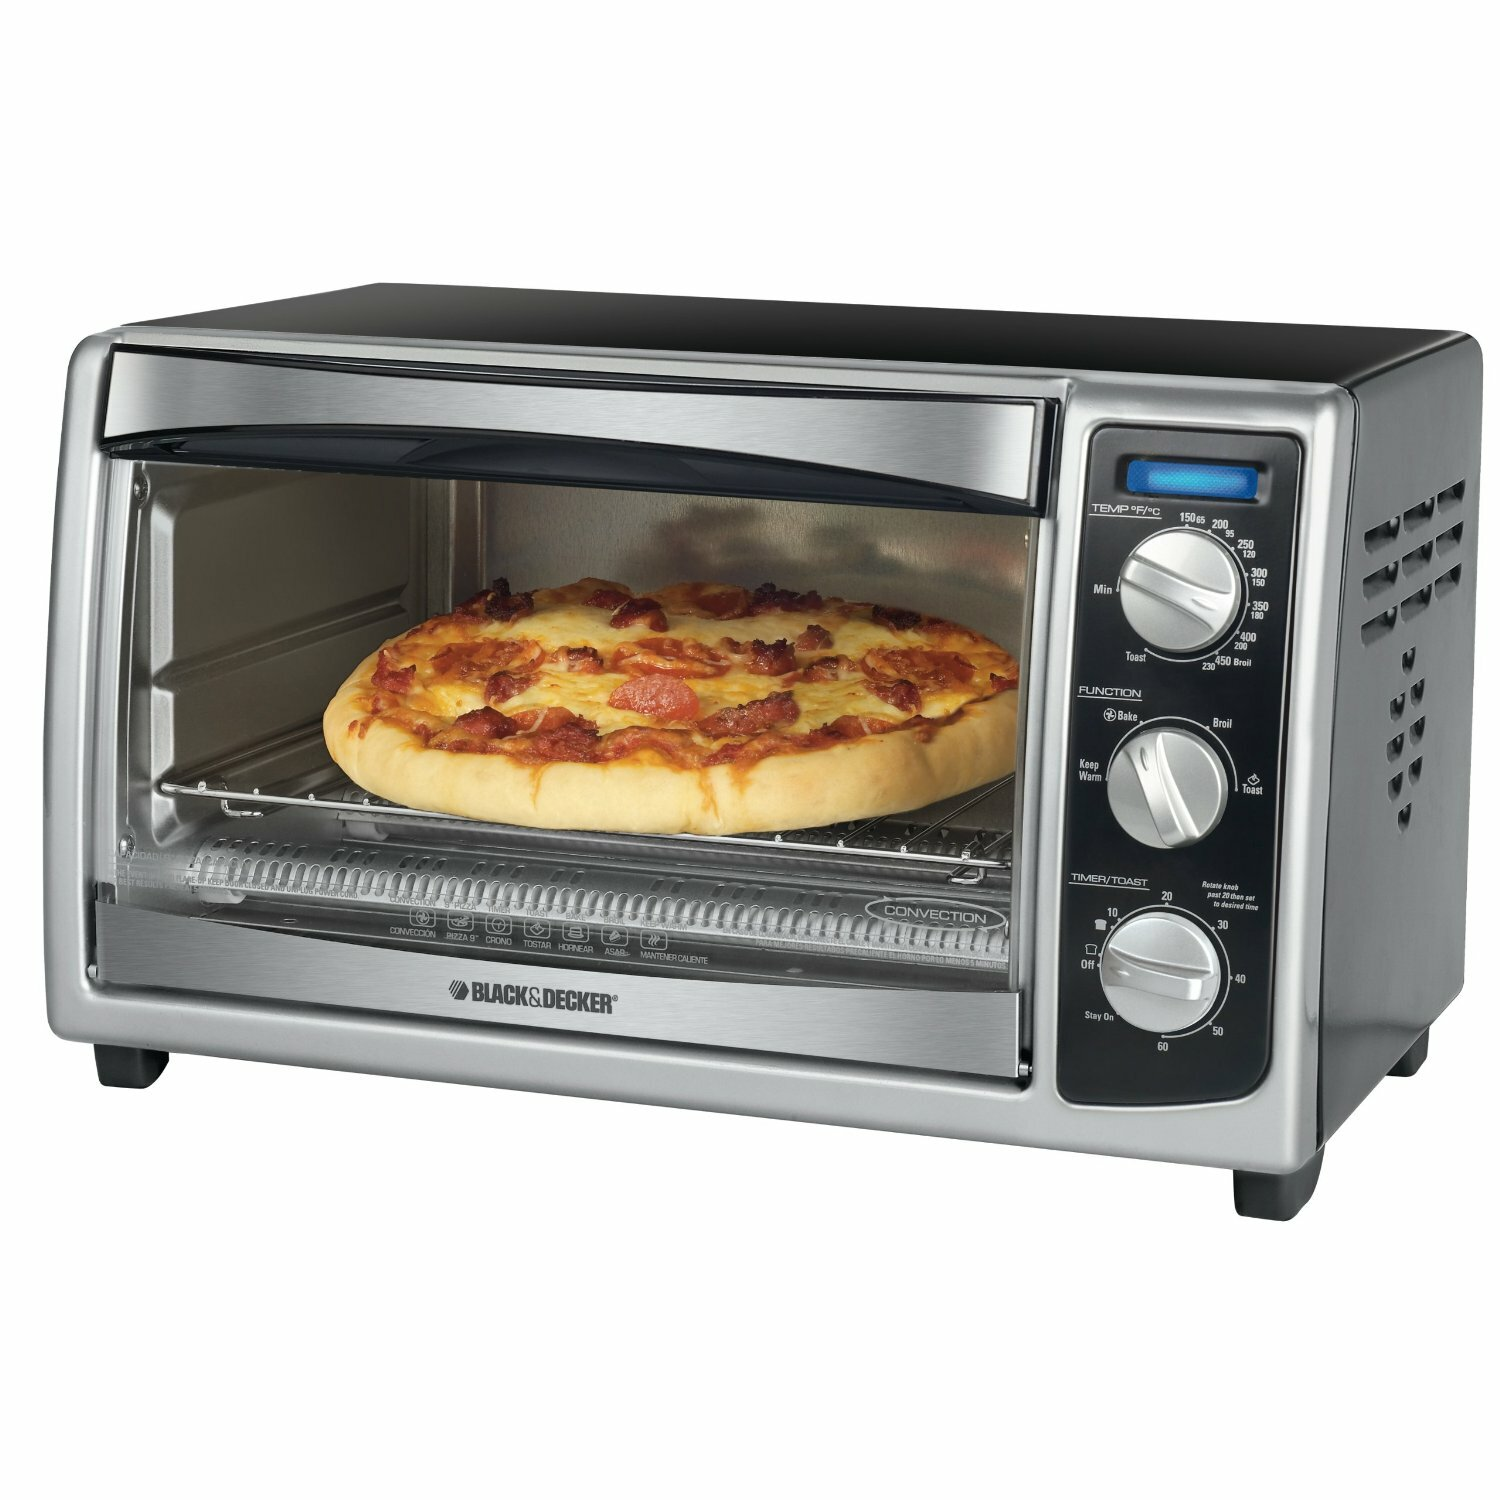 Countertop Convection Ovens For Sale : Countertop Convection Toaster Oven by Black & Decker